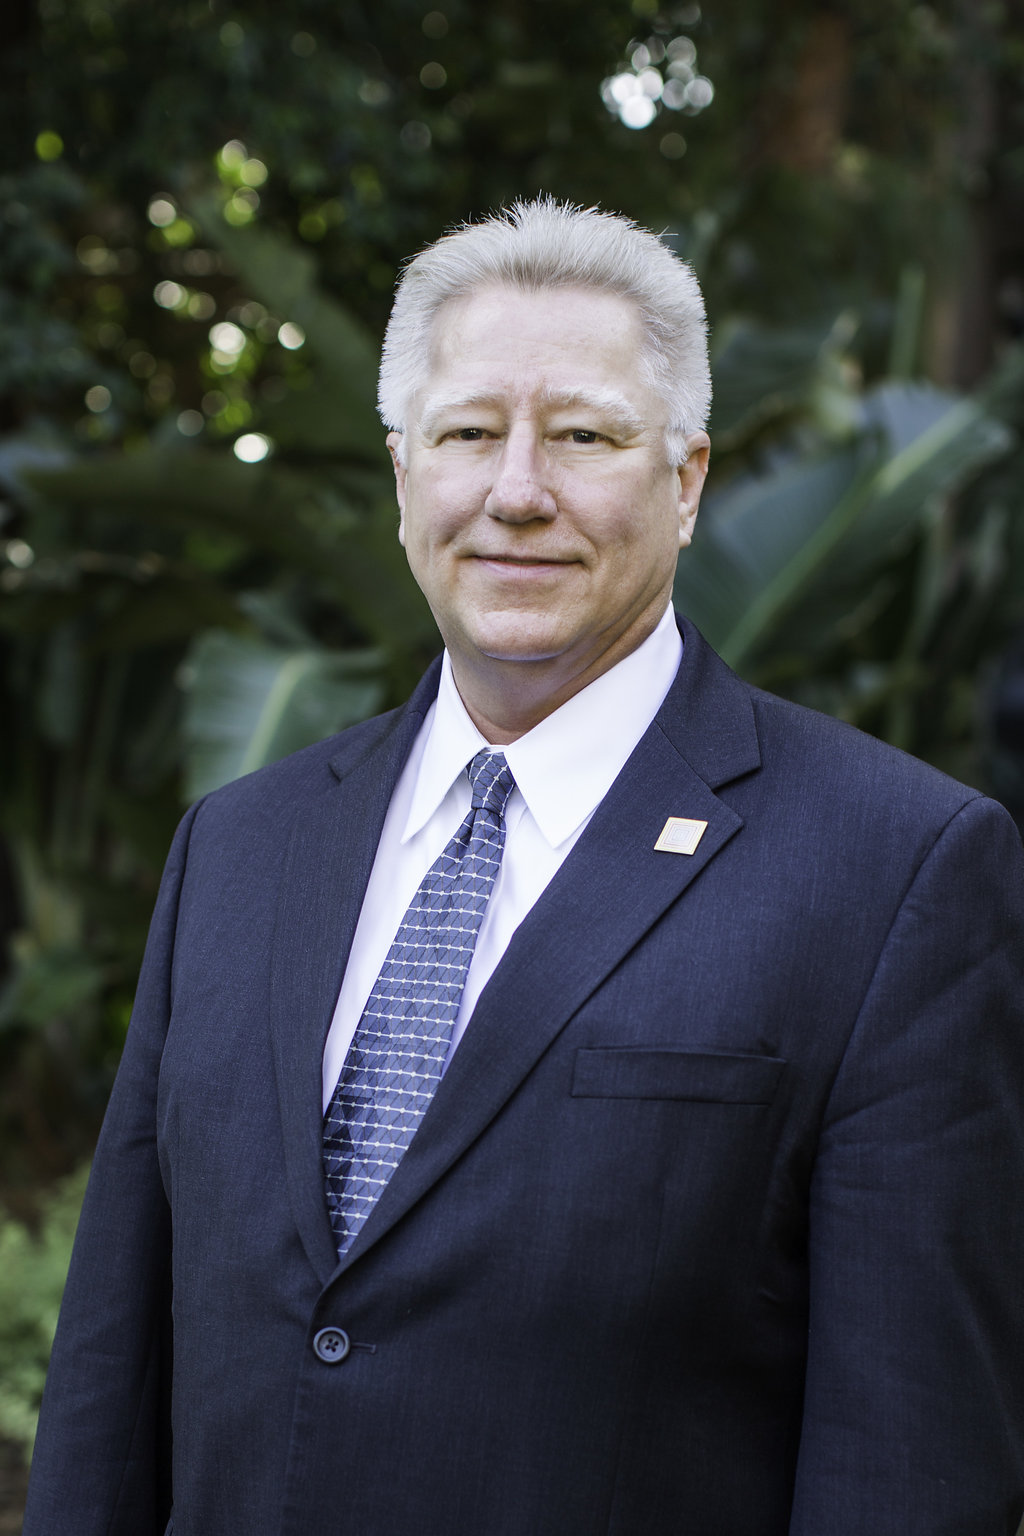 ROBERT LOLL  LAWYER GENERAL COUNSEL